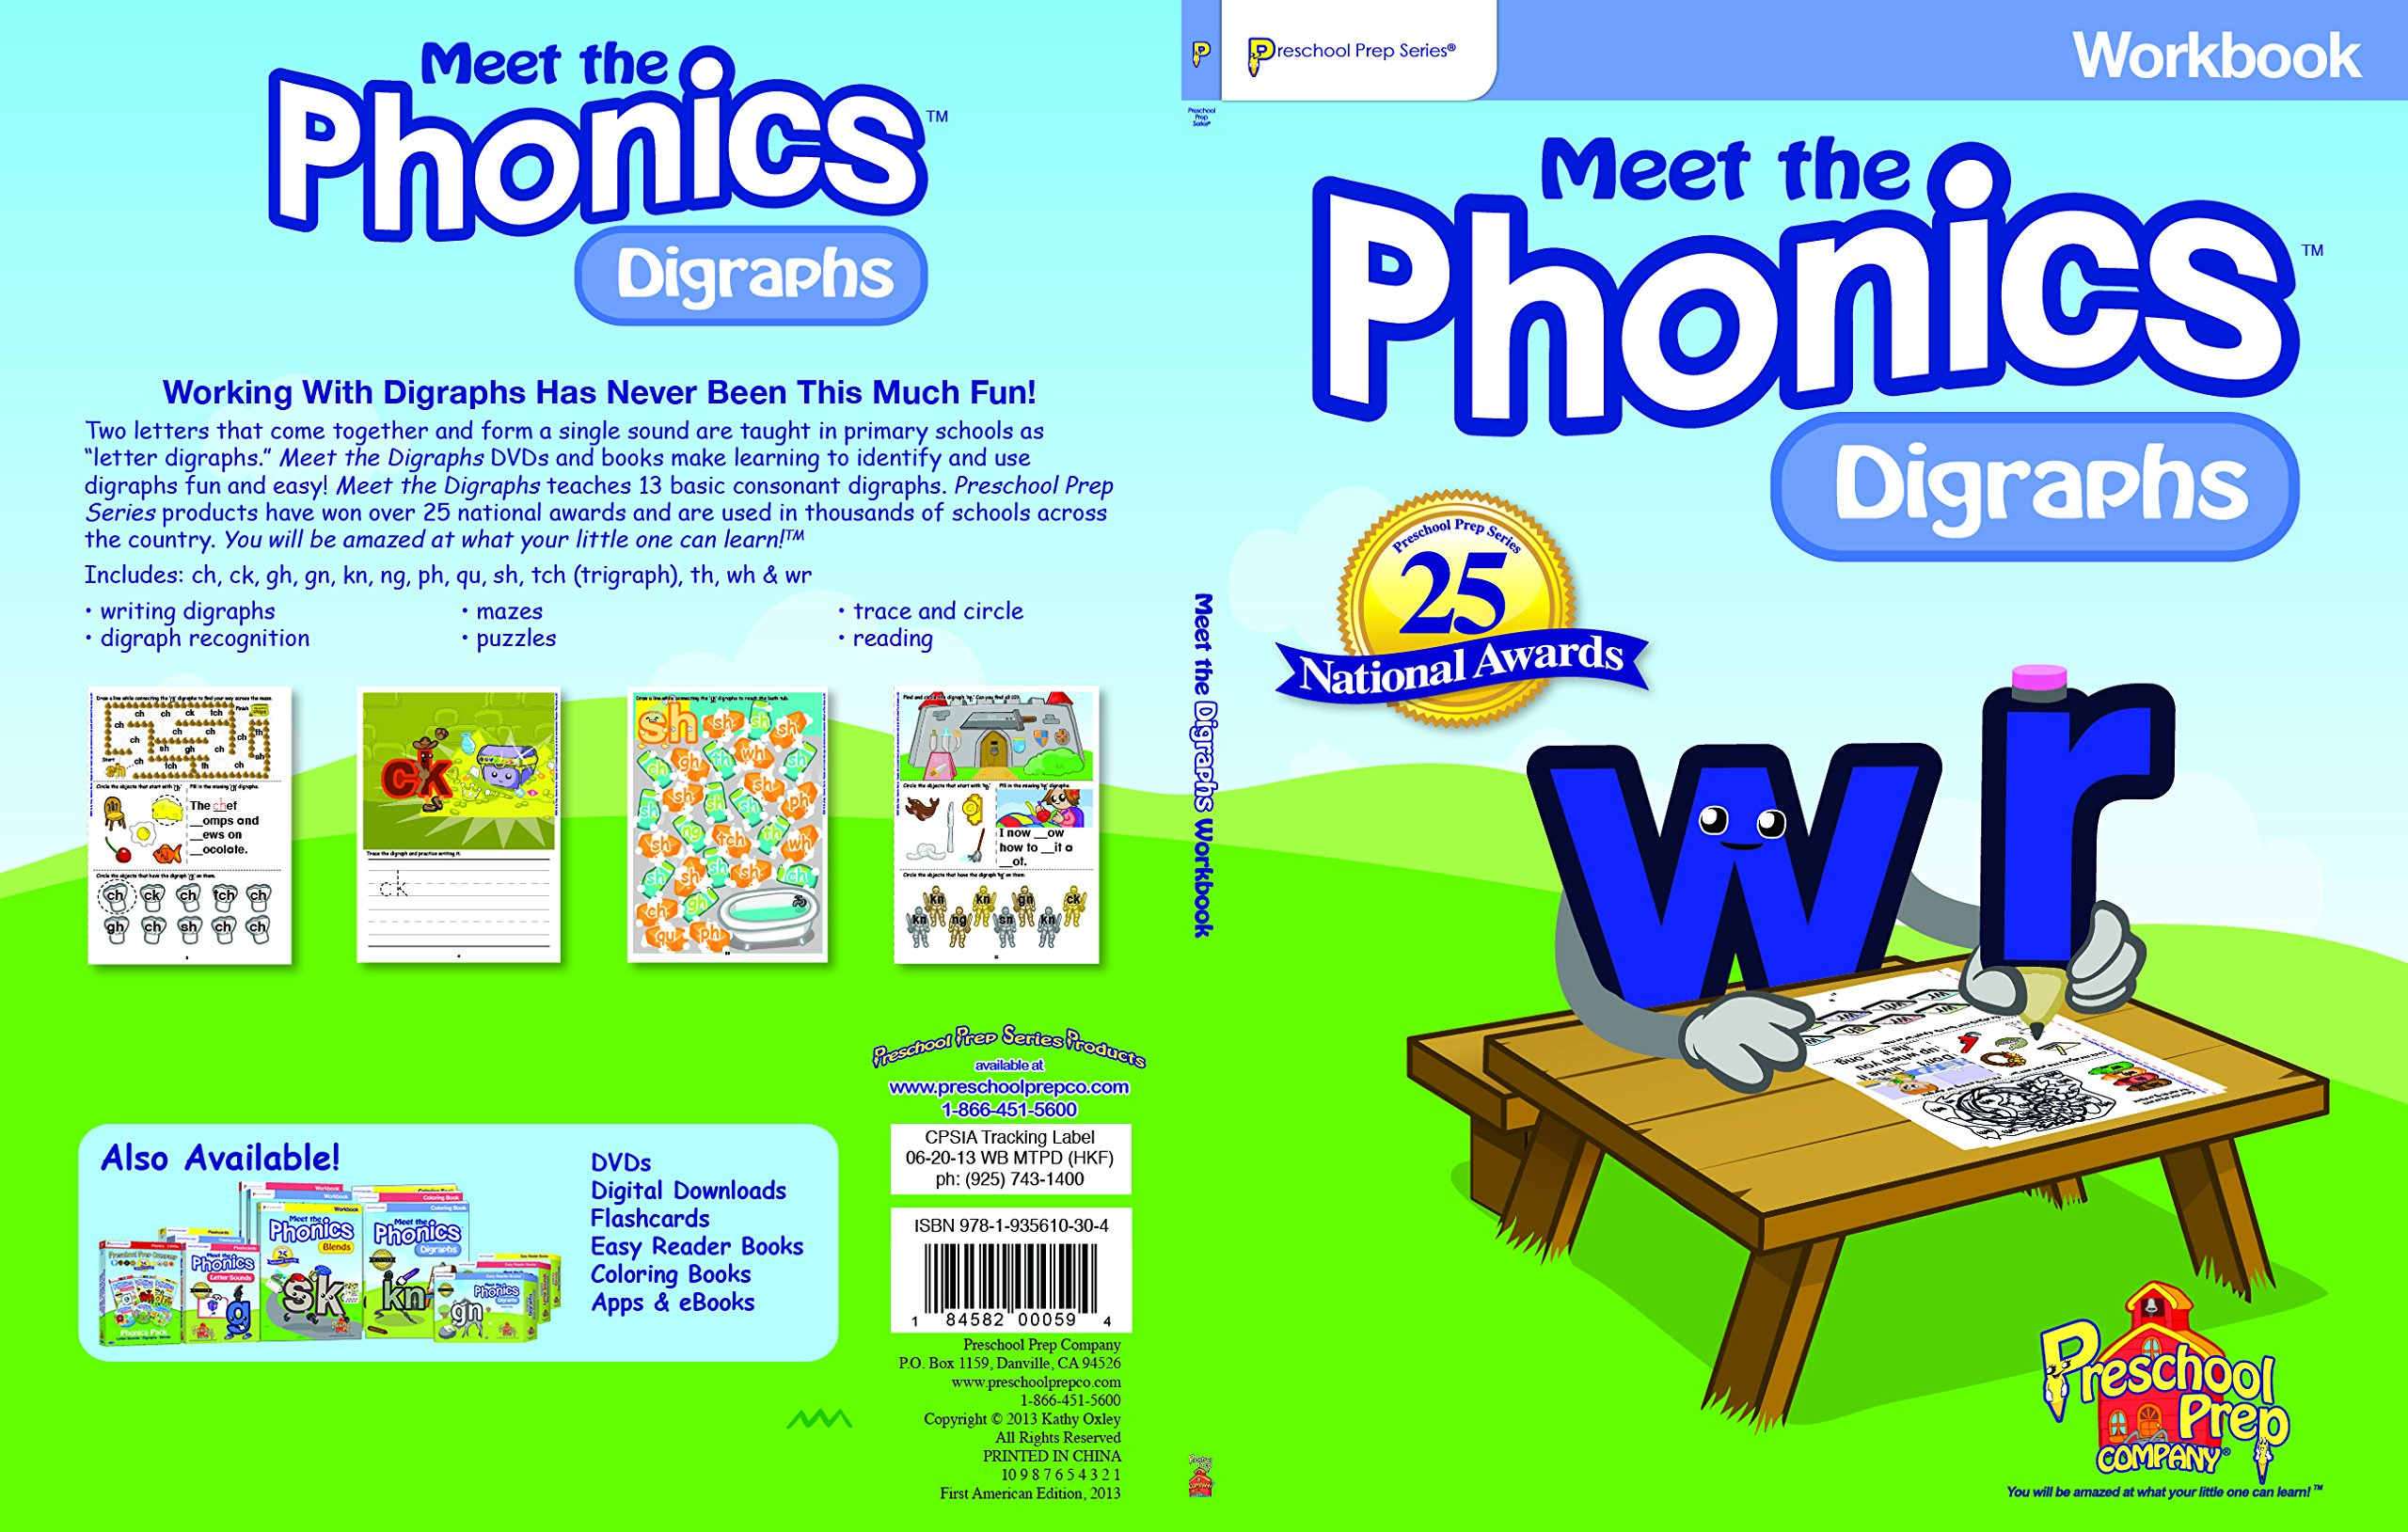 Meet the Phonics - Digraphs Workbook: Kathy Oxley: 0184582000594 ...